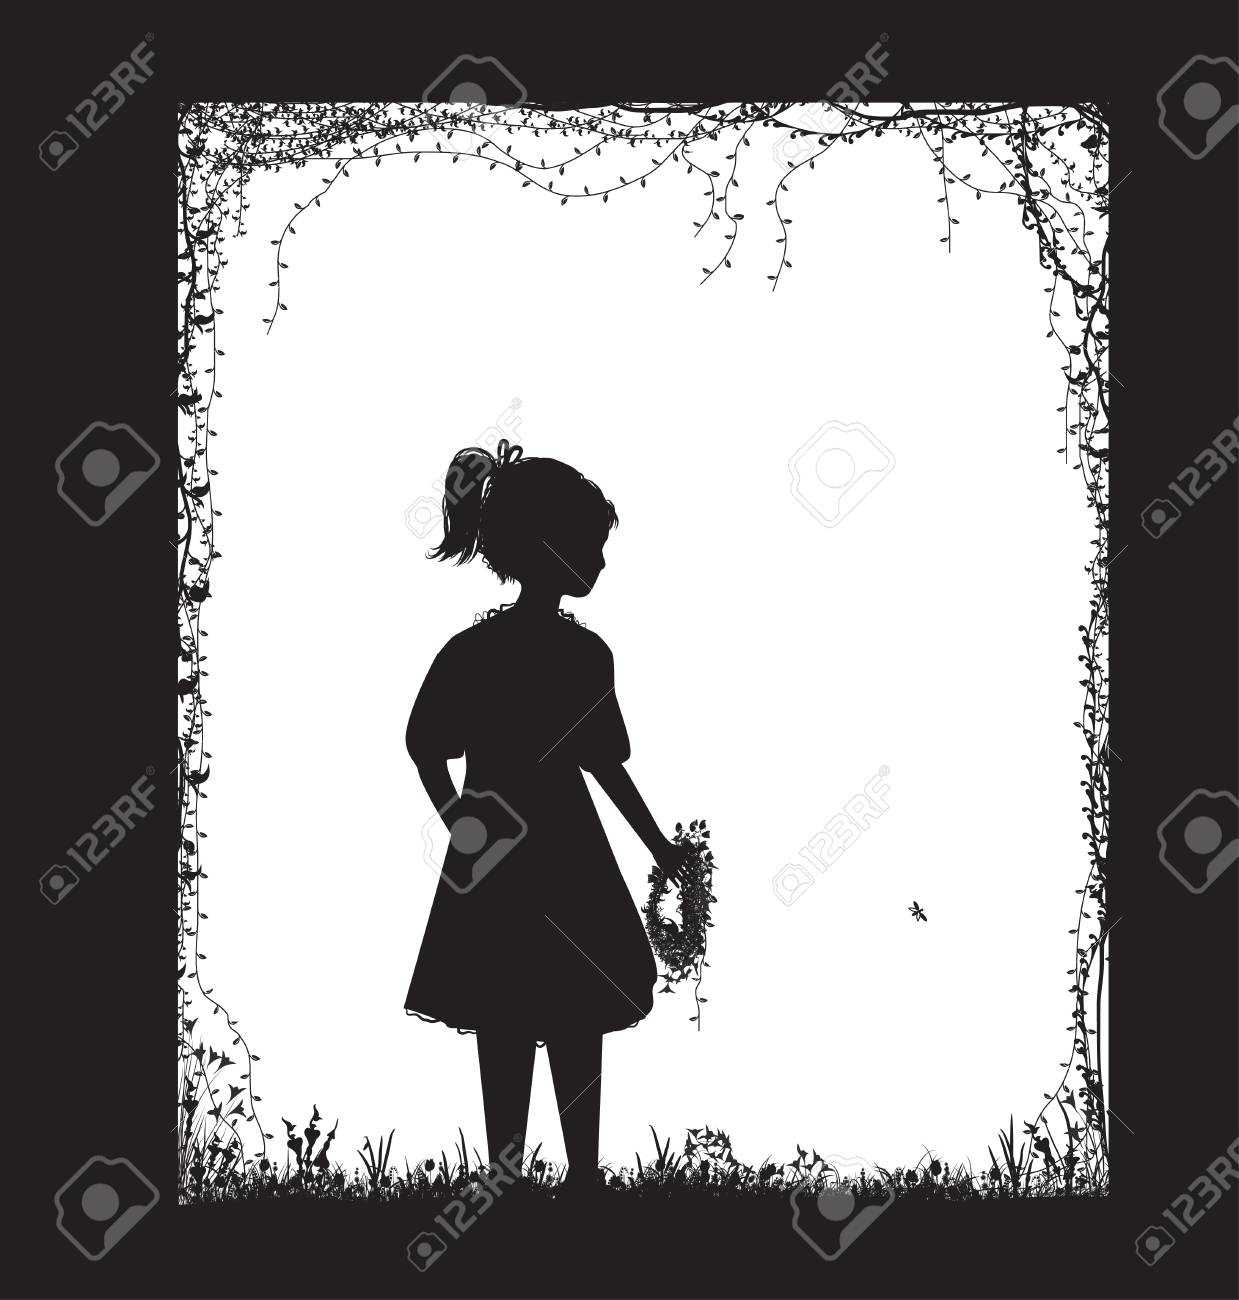 Small girl holding the field flower wreath black and white